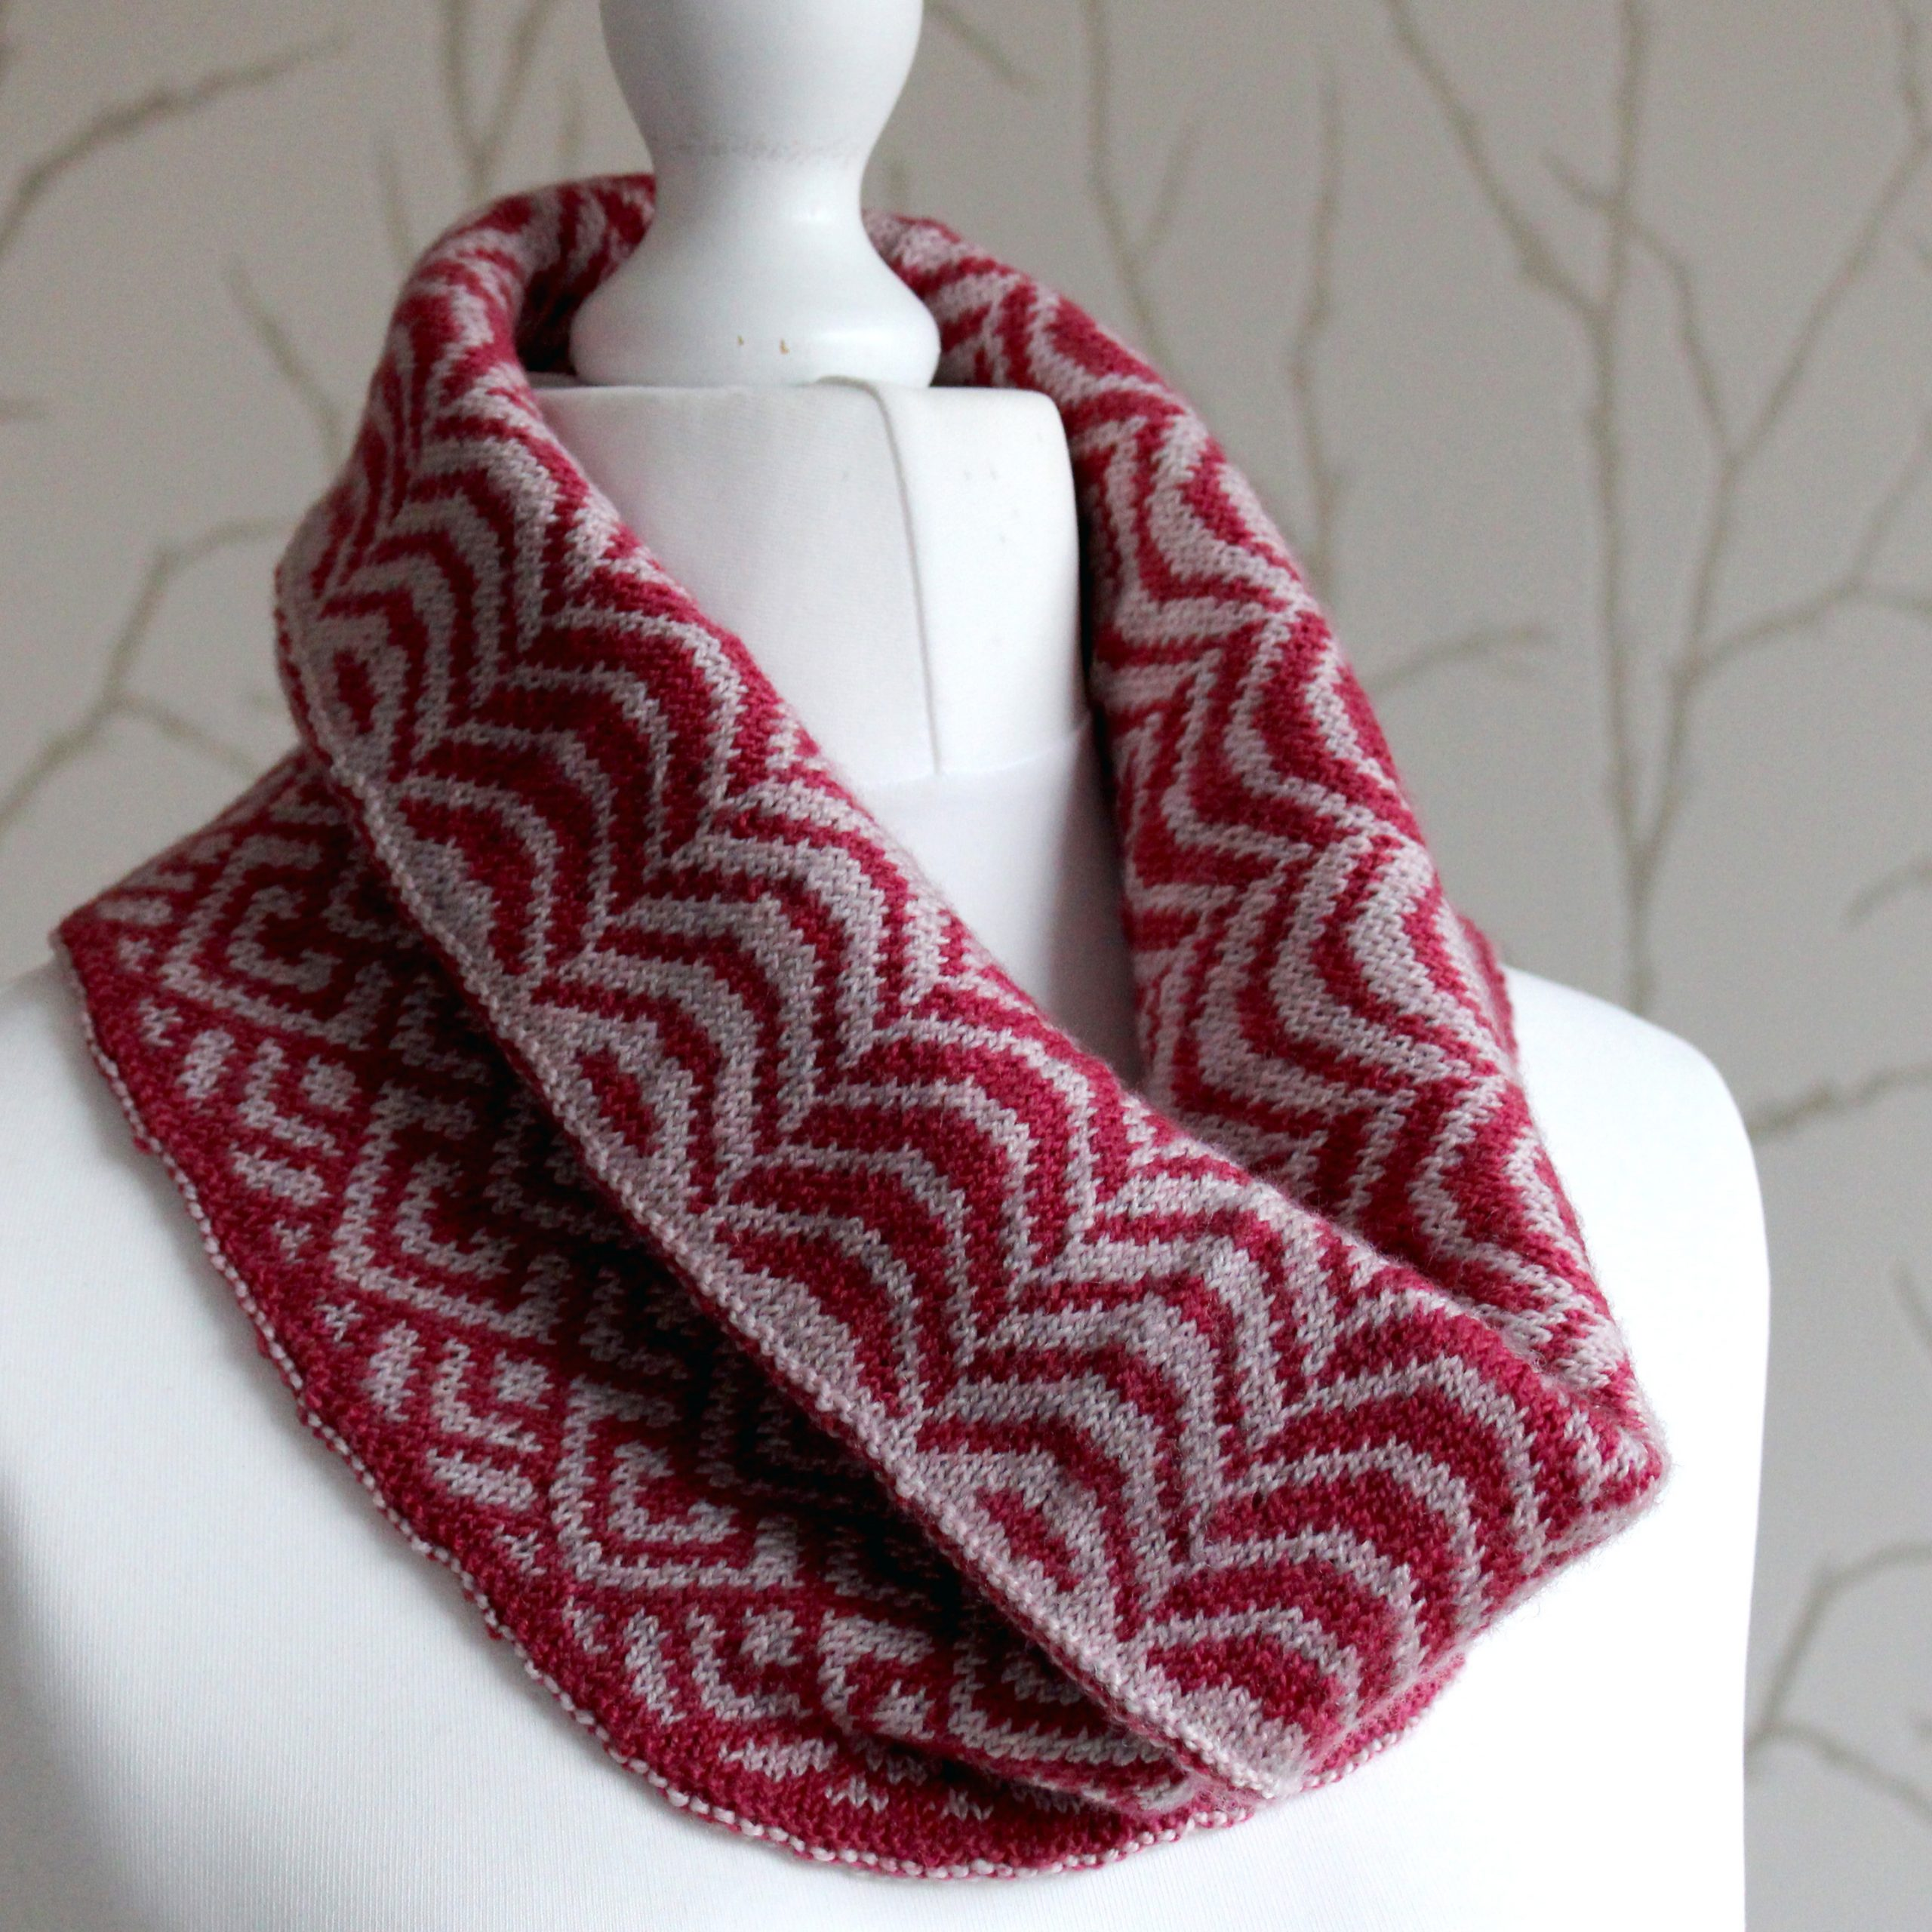 "A cowl with stranded knitting in red and pink yarn with a pattern made up of soft curves, folded over a pattern made up of interlocking ""V"" shapes and scale shapes, modelled on a mannequin"